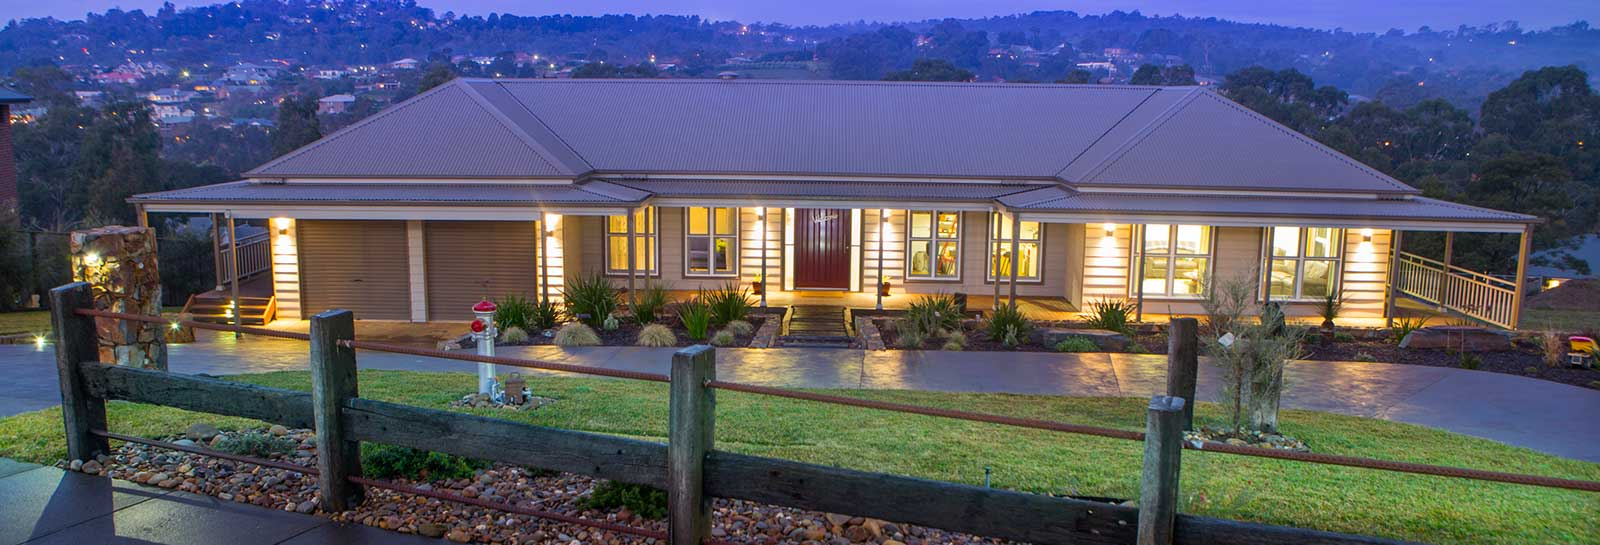 The Castlereagh features modern colonial styling with four bedrooms, three bathrooms (including two ensuites), guest room, study and rumpus room, and it is ideal for acreage. PAAL Australia NSW, VIC, QLD.